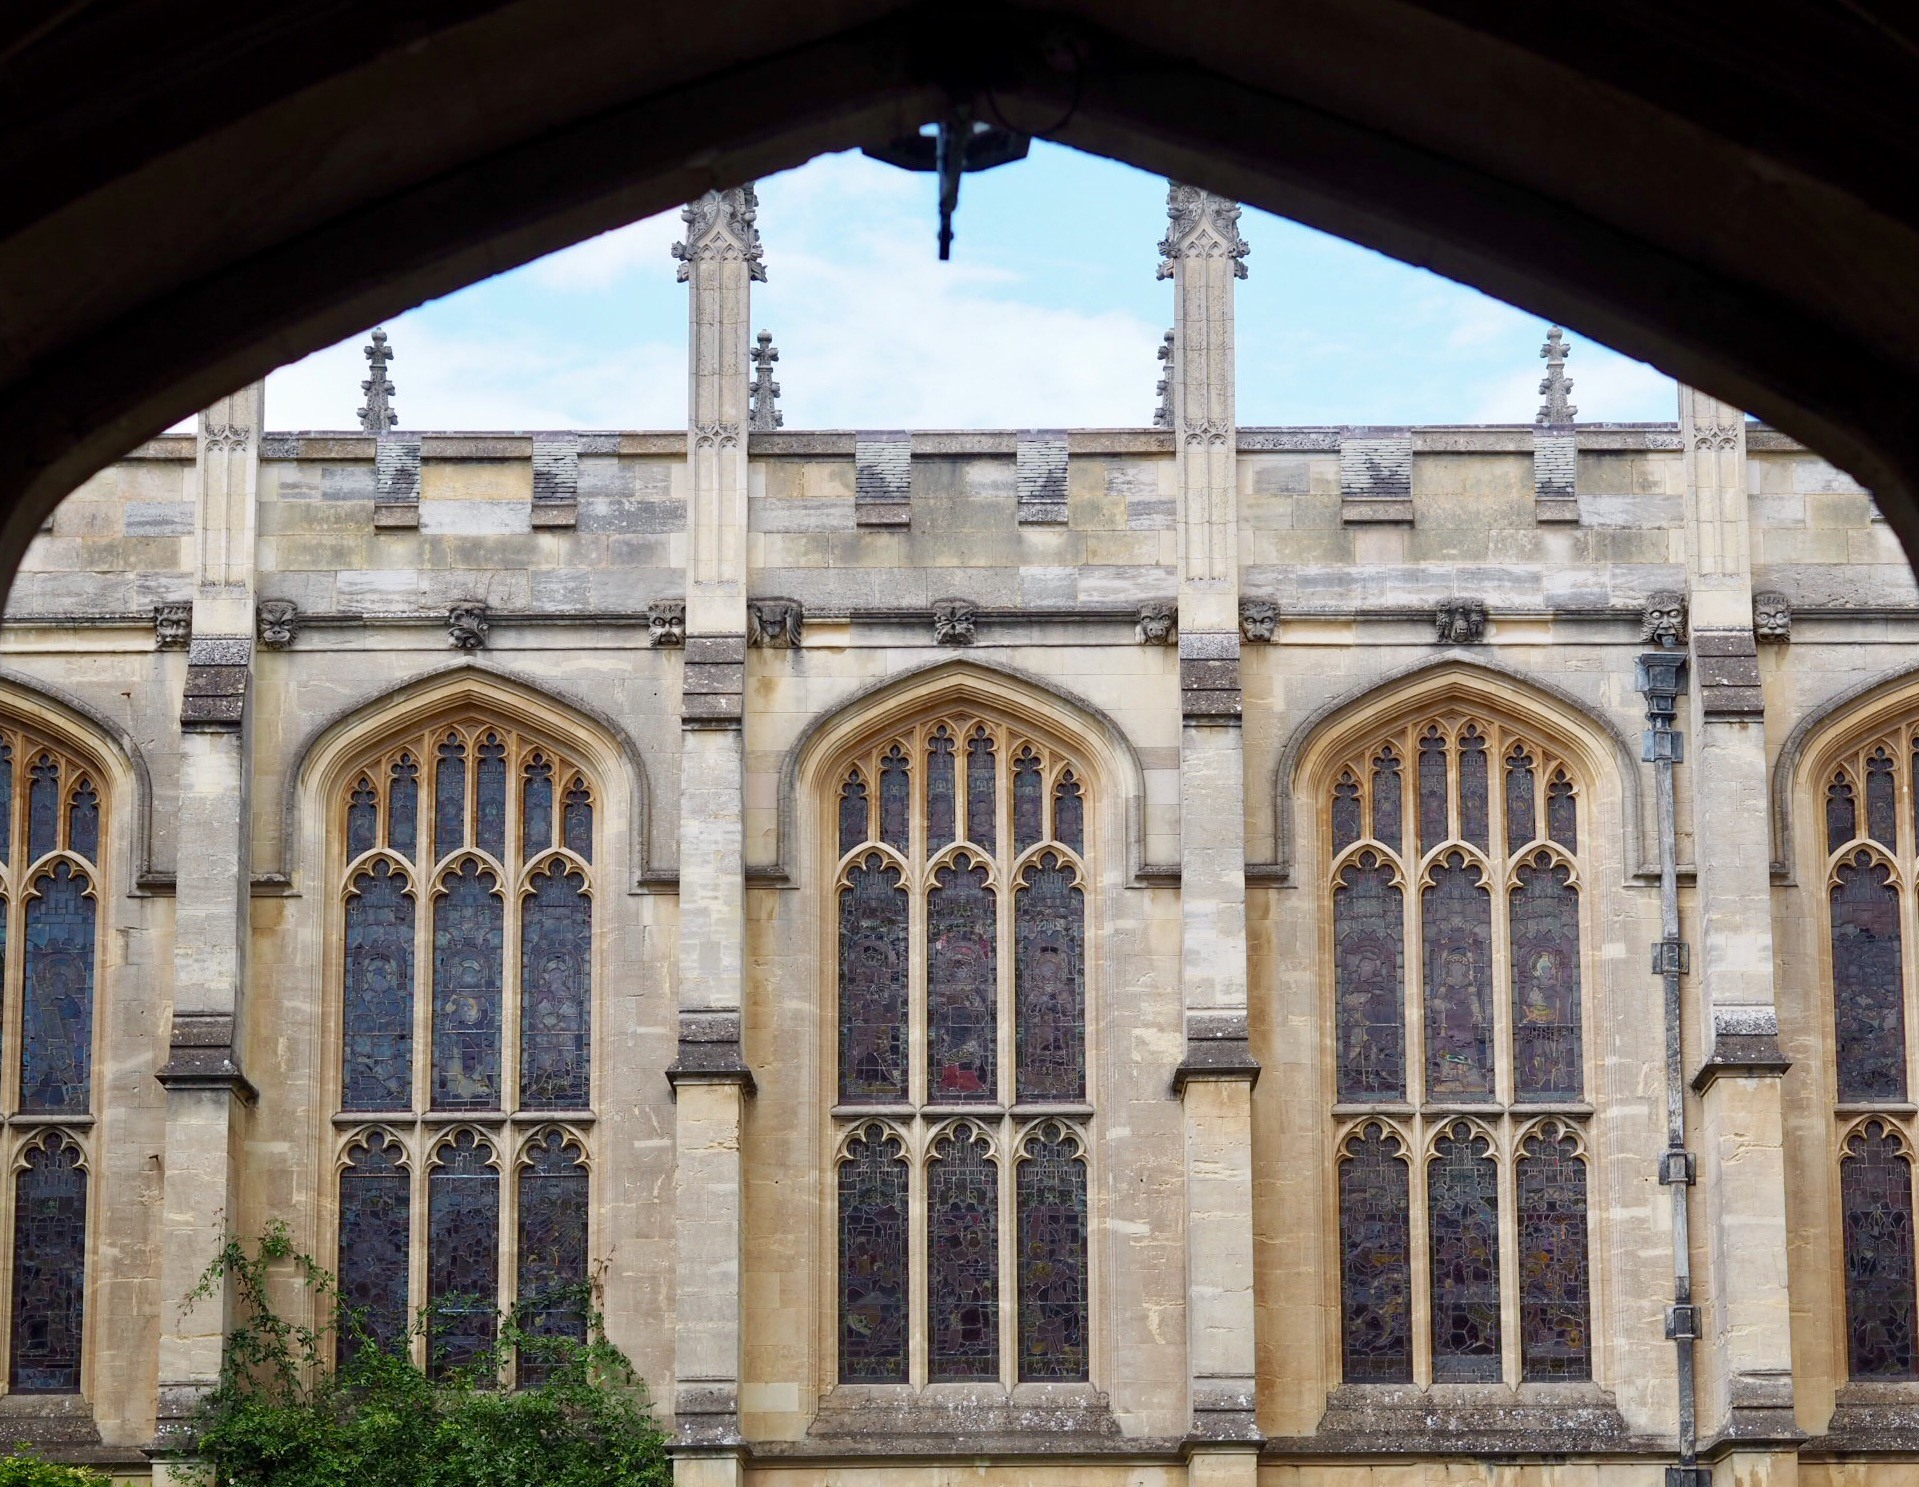 A trip to Oxford